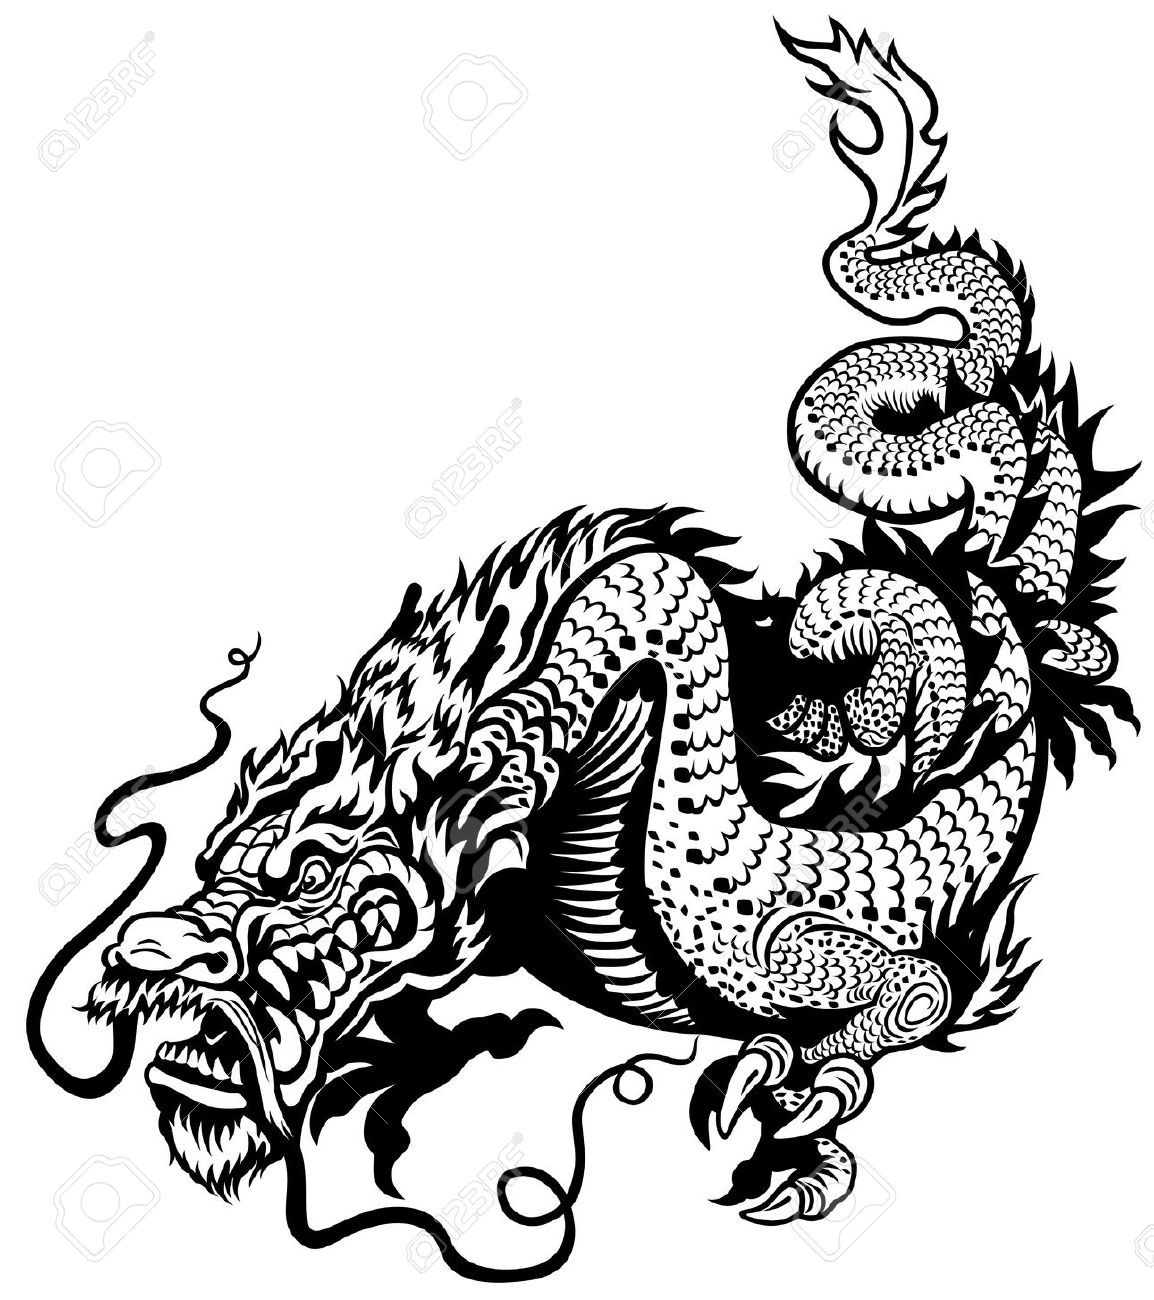 Stock Vector With Images Dragon Illustration Chinese Dragon Black And White Illustration